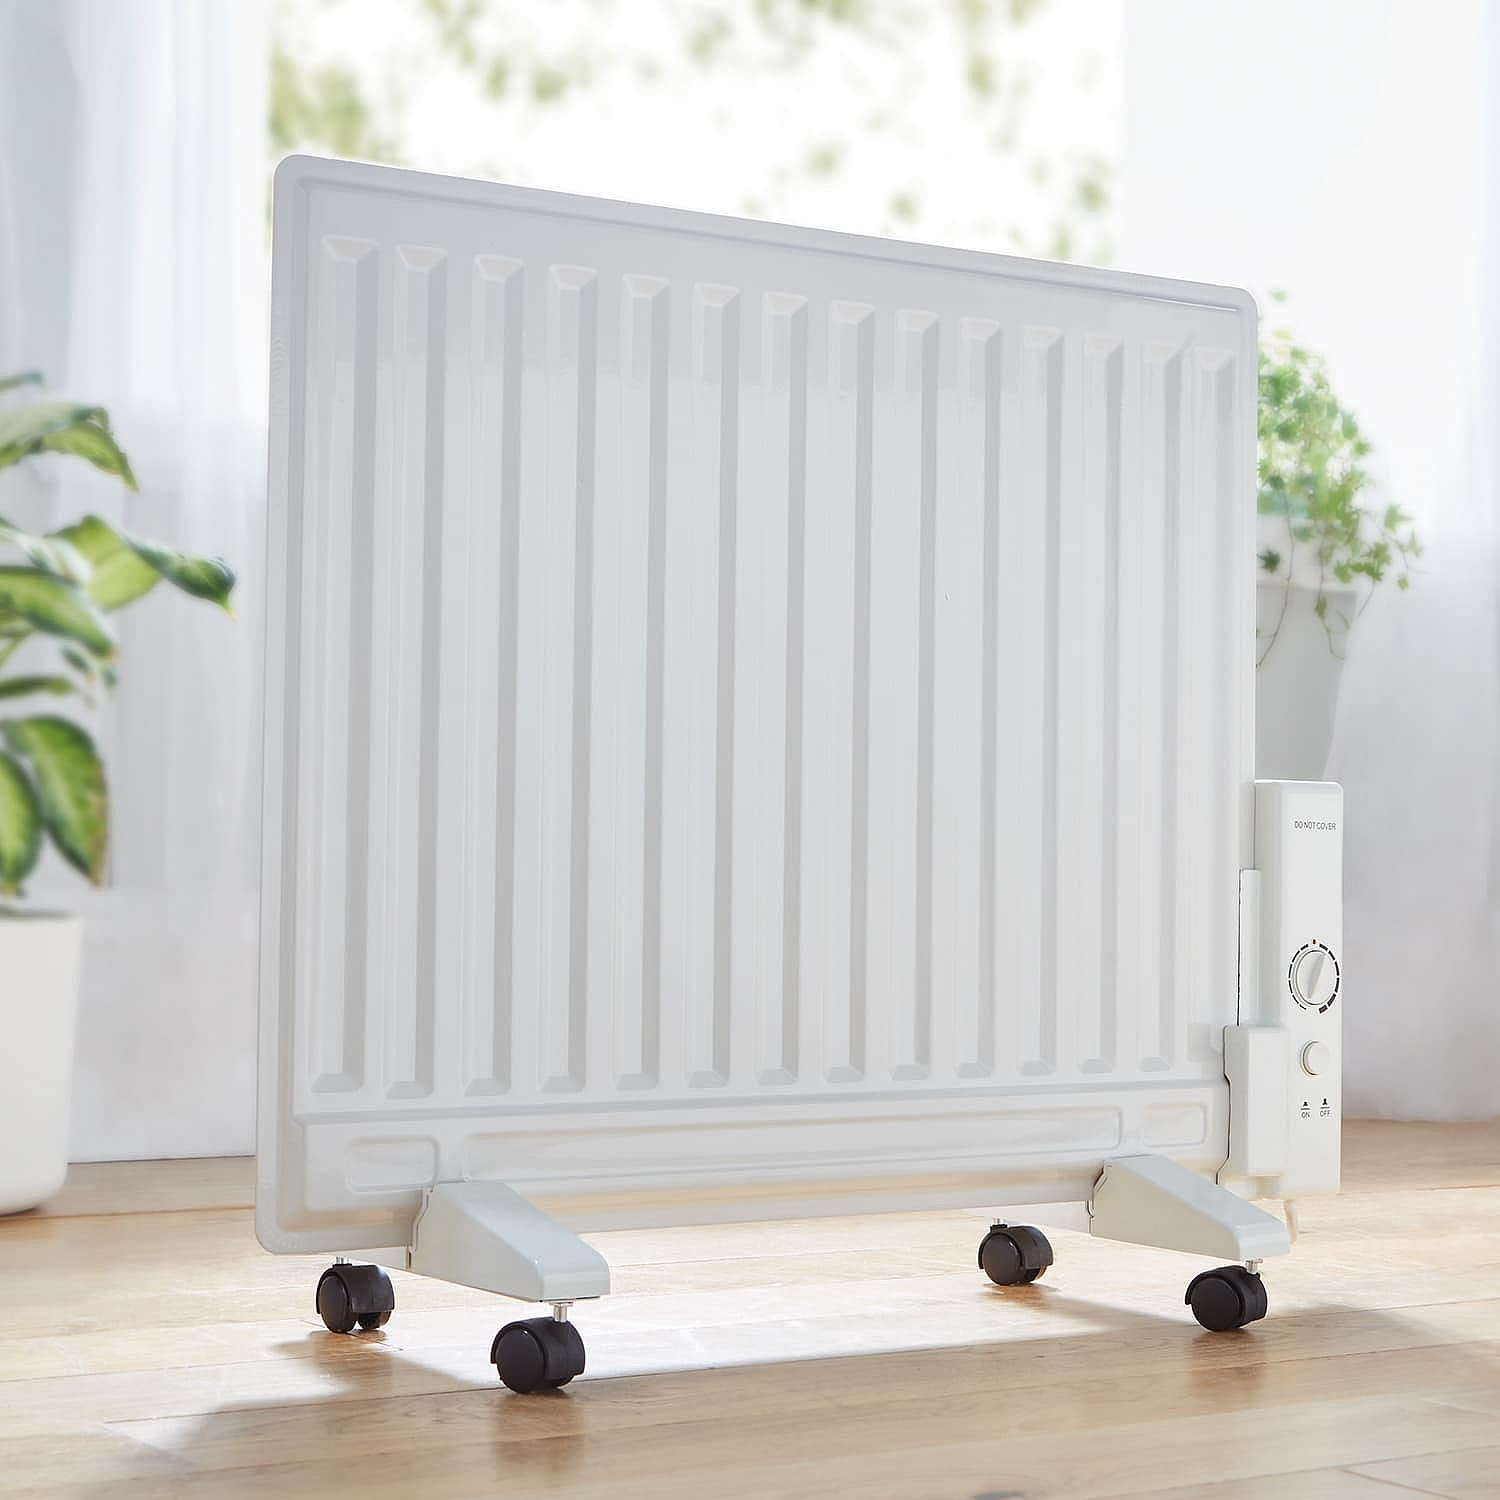 Oil Filled Electric Panel Radiators on designer radiators, wall radiators, runtal radiators, aluminum radiators, cast iron radiators, modern radiators, electric pressure cookers, european style radiators, 4 core radiators, electric juicers, steam radiators,